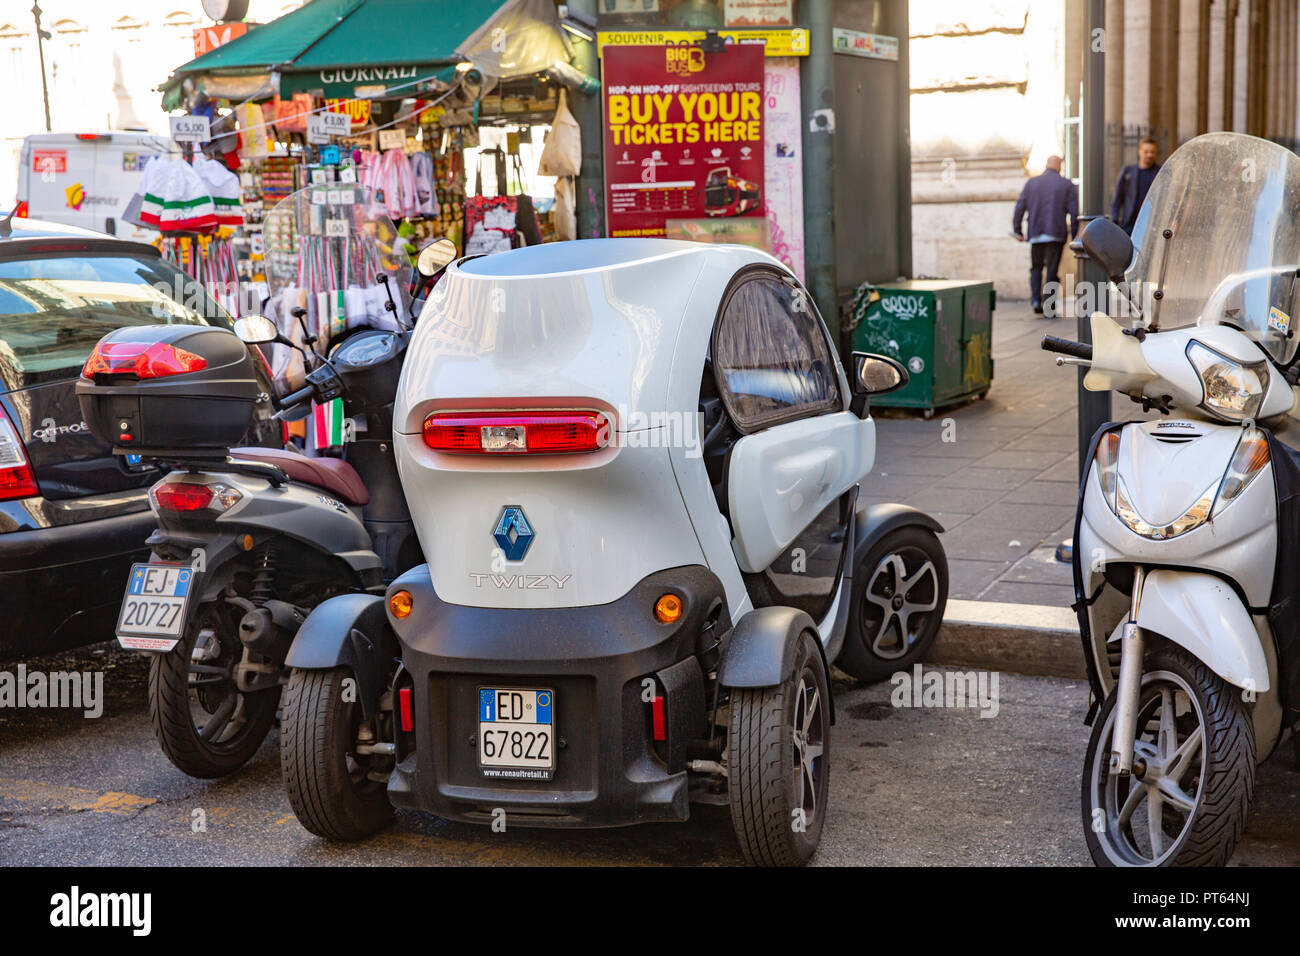 Renault Twizy electric vehicle car parked in a small space between scooters in the centre of Rome,Italy Stock Photo